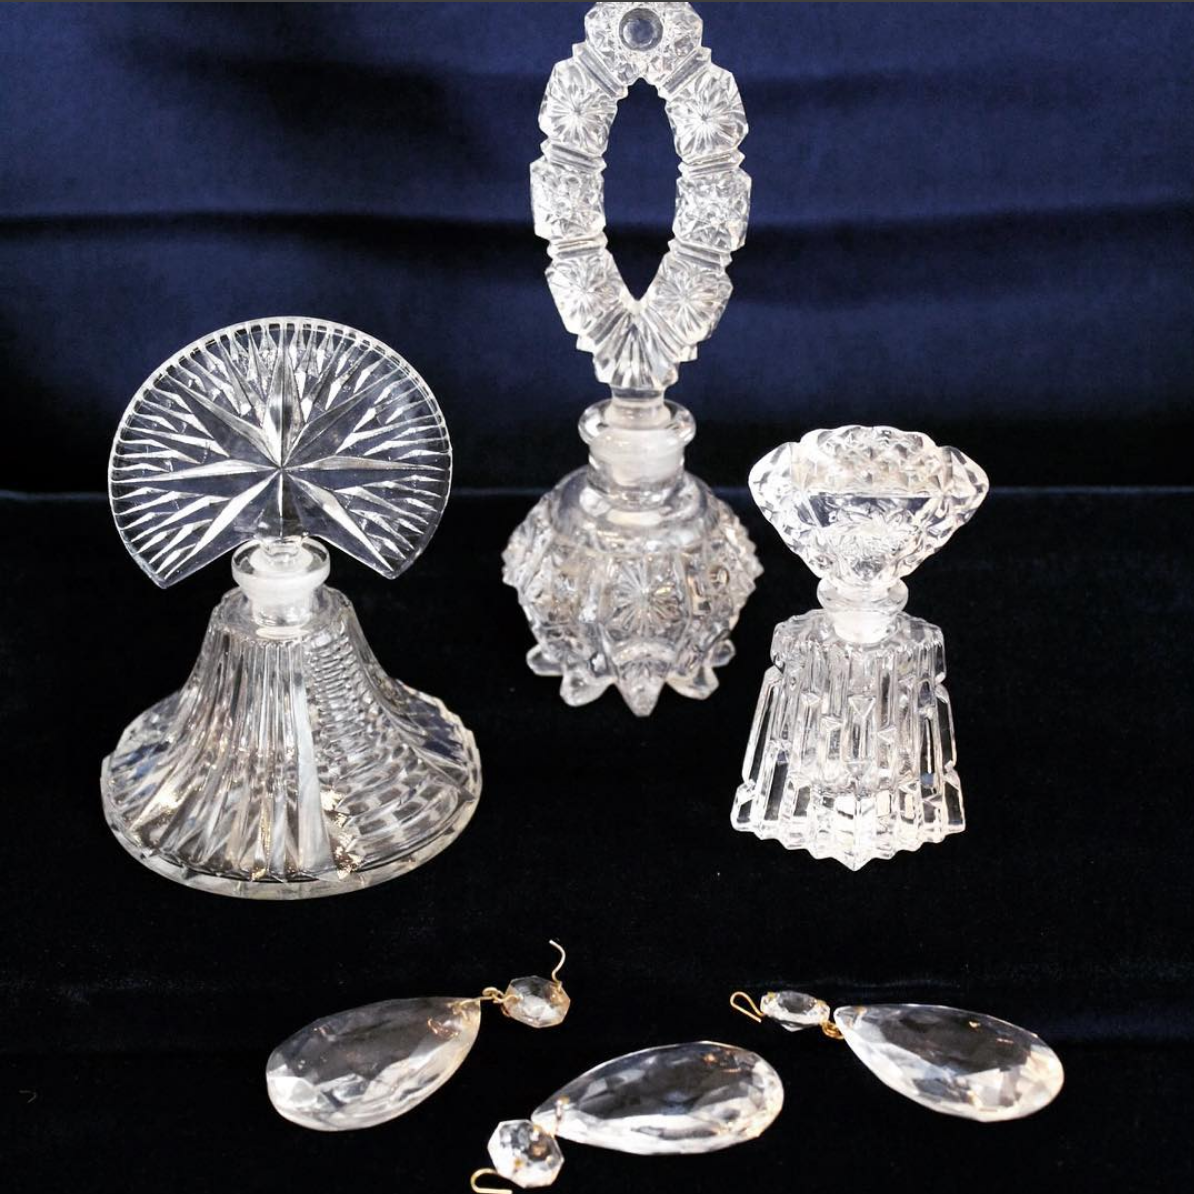 Crystal Perfume Decanters